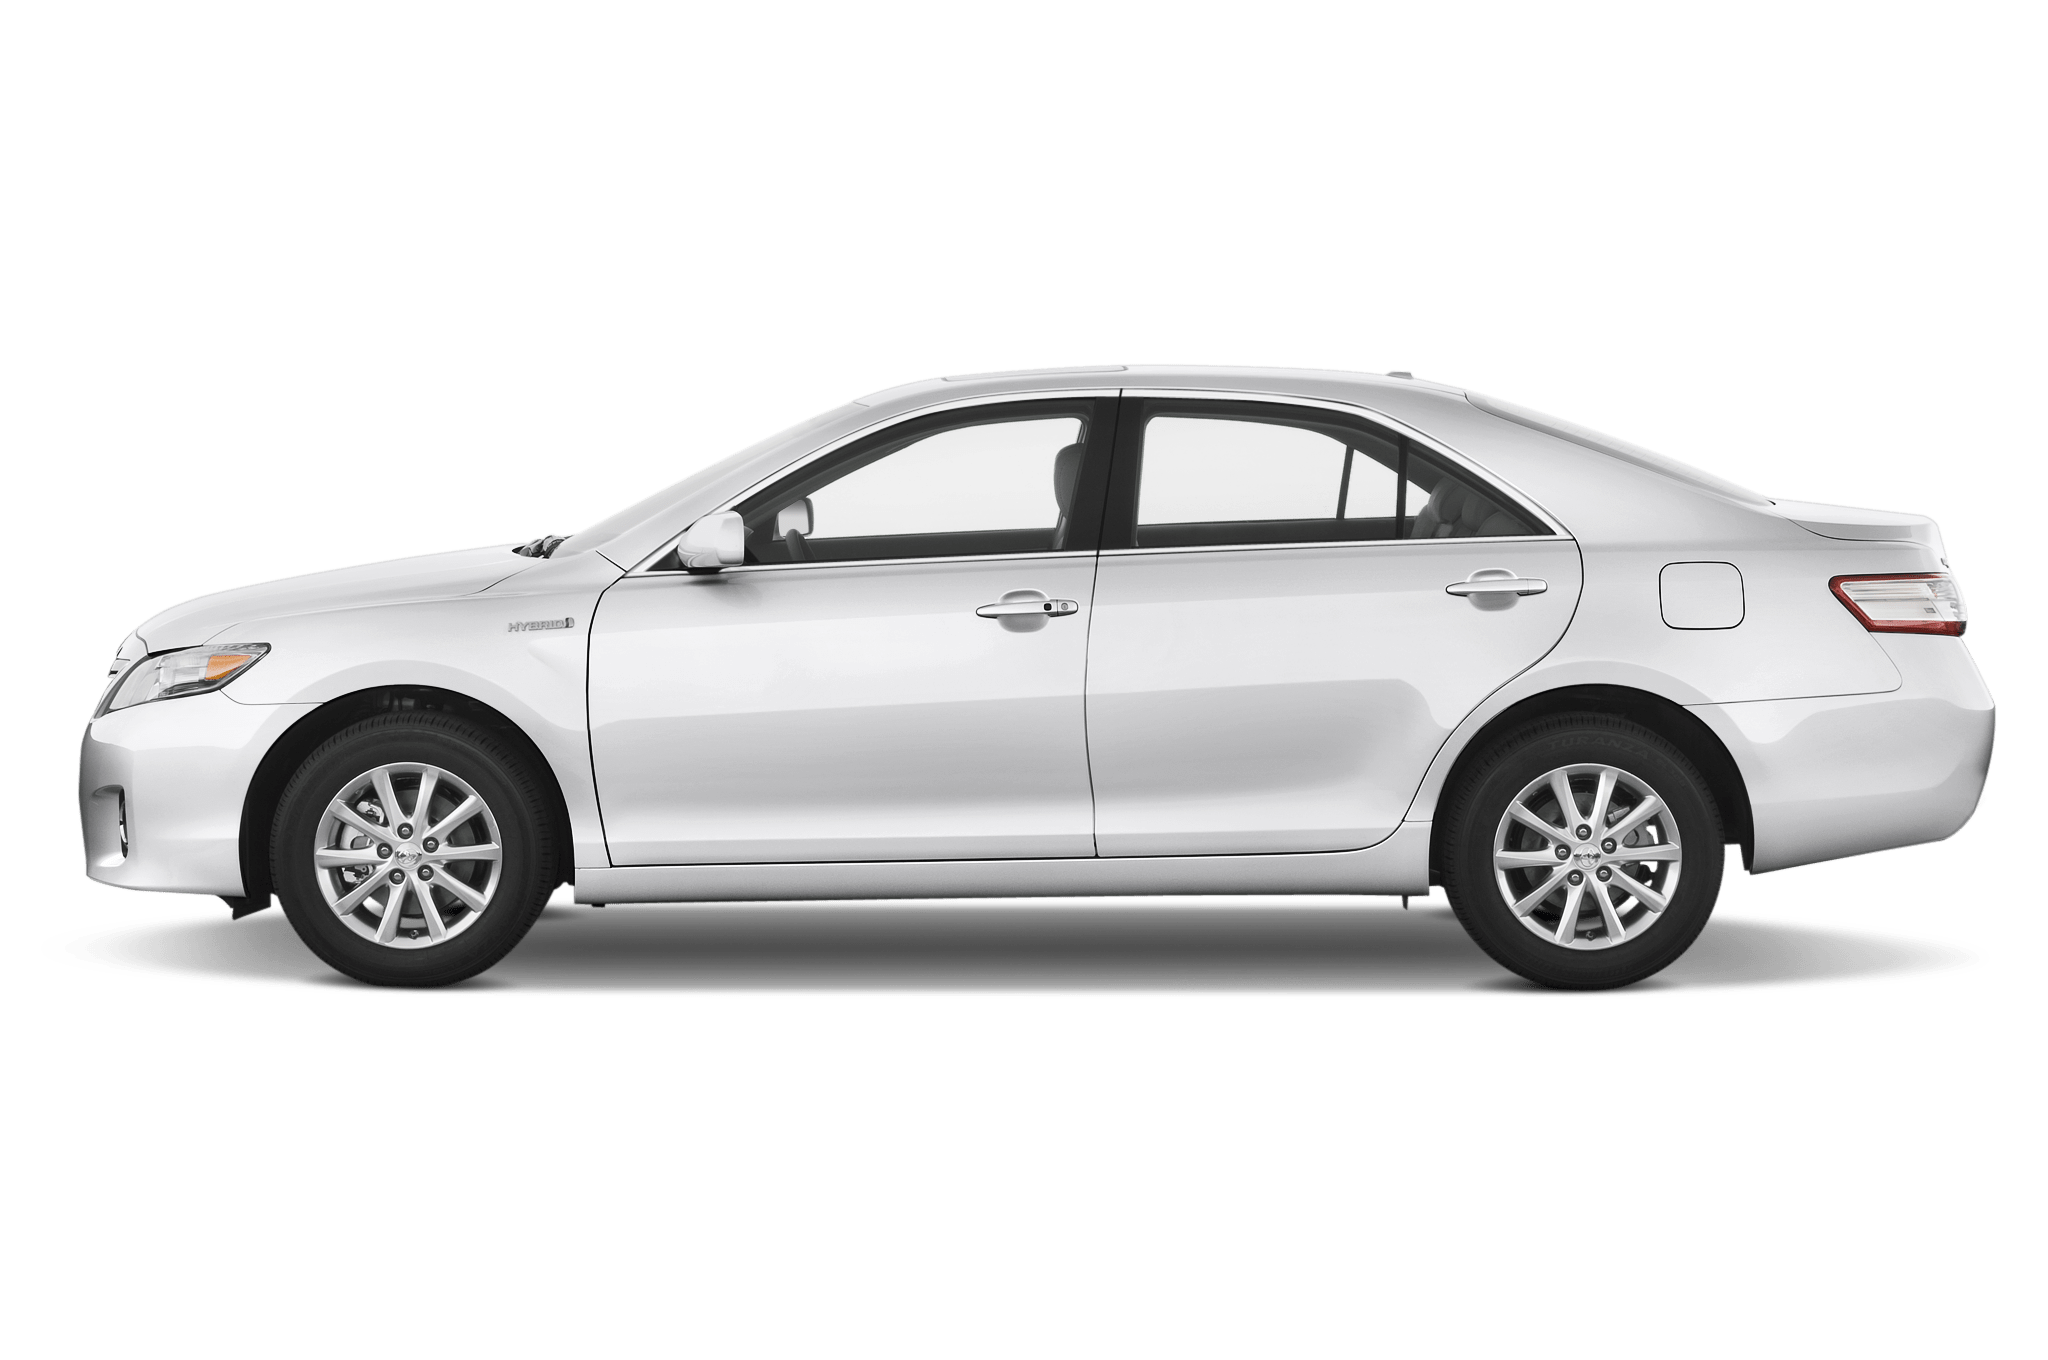 Toyota Camry for hire at Just In Time Transportation Services